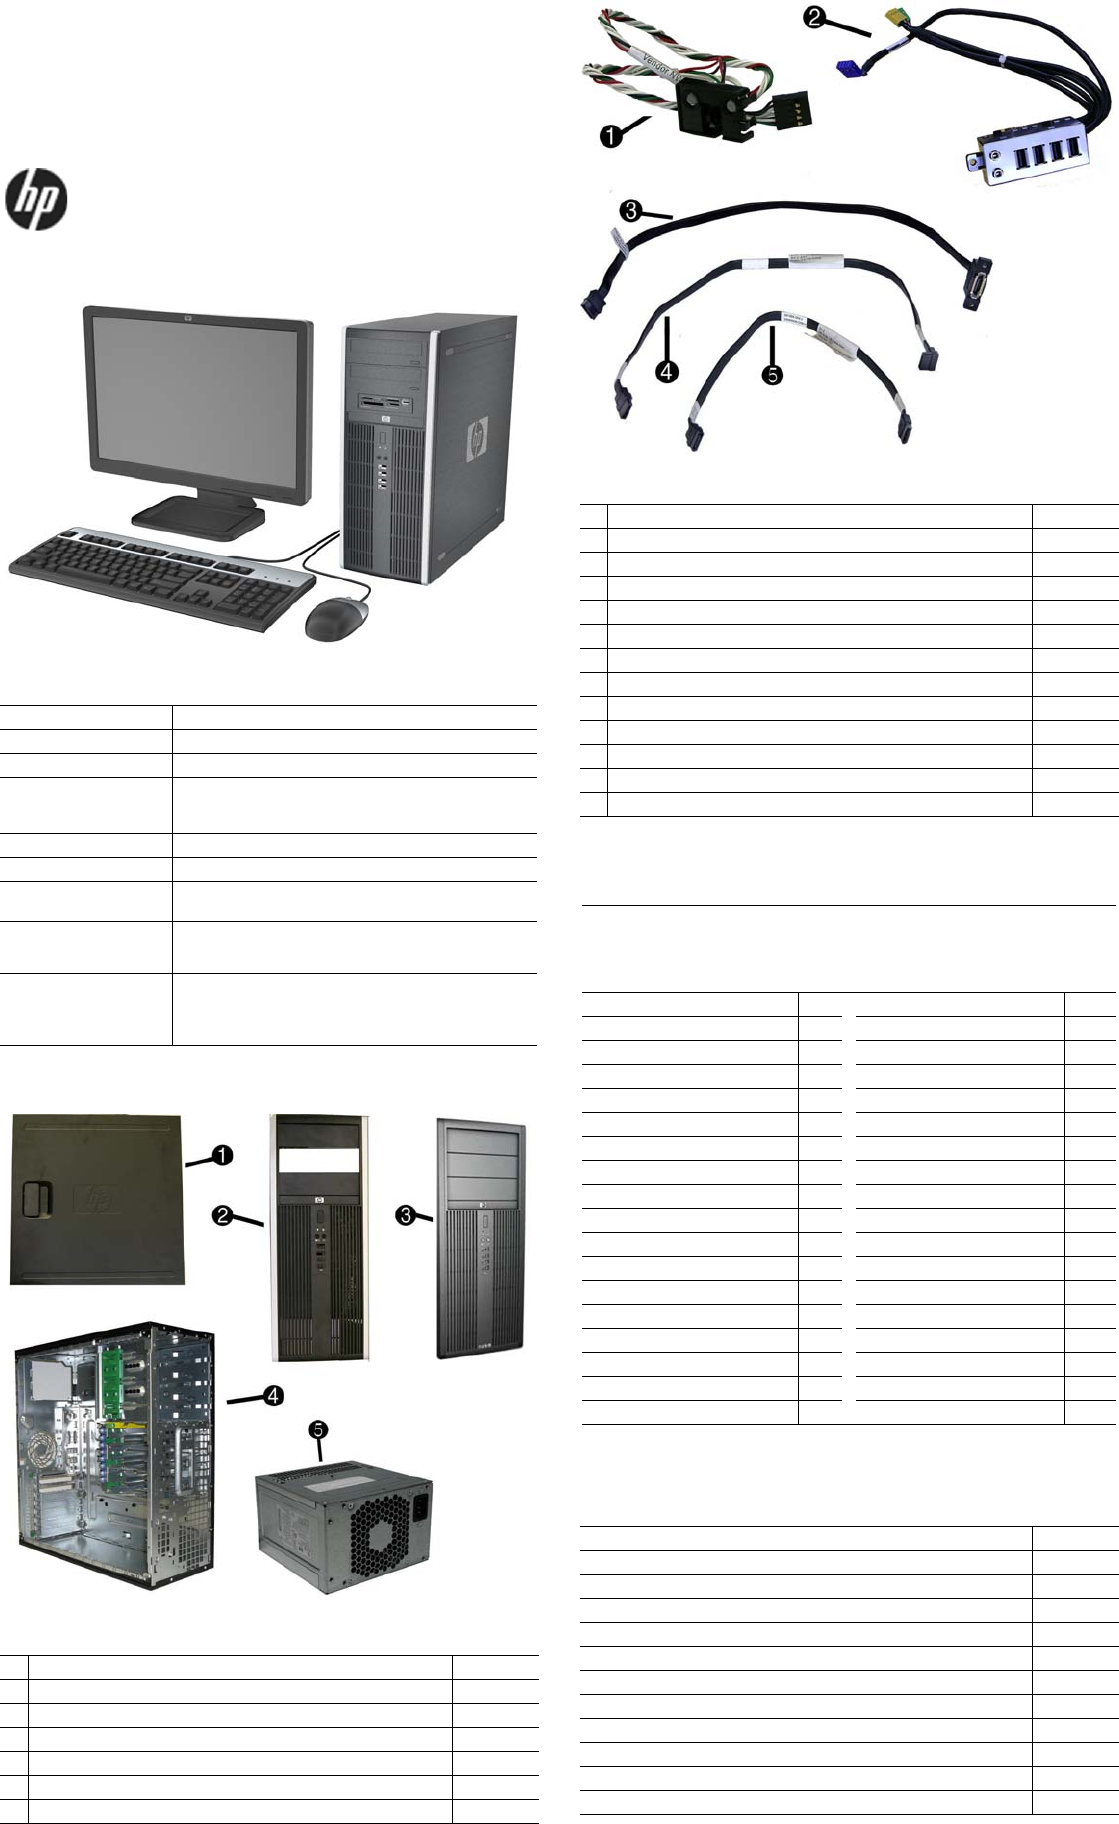 Hp Compaq 8100 Elite Convertible Minitower Pc Reference Guide